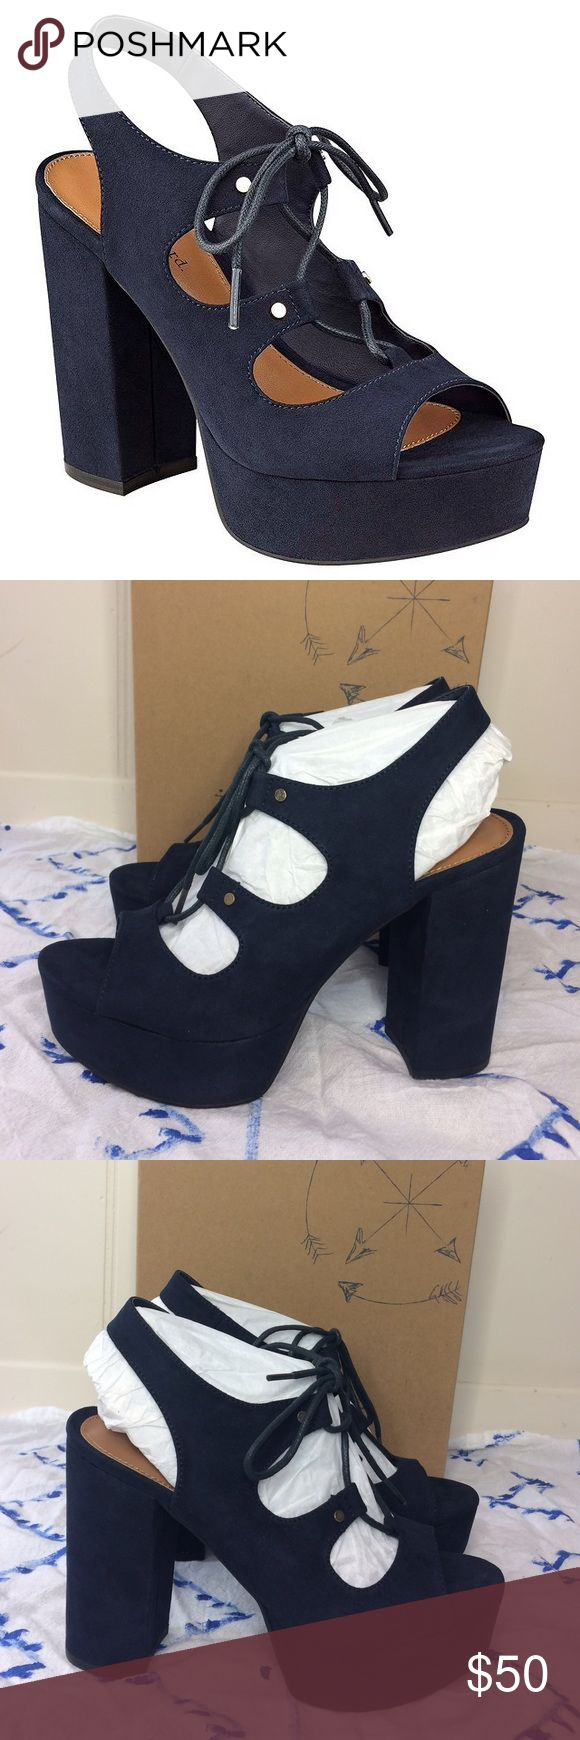 """NWT🔥 Indigo Rd Navy Blue Platform Ghille Sandals ✨New in the box!✨ • Indigo Rd """"Ebonee"""" Platform Ghille Sandals. • In the color """"Navy"""" • Has a 4 3/4"""" heel & 1 1/4"""" platform. • Size 8. • {If you have any questions please ask before buying} •Colors may vary slightly from pictures• Indigo Rd Shoes Platforms"""